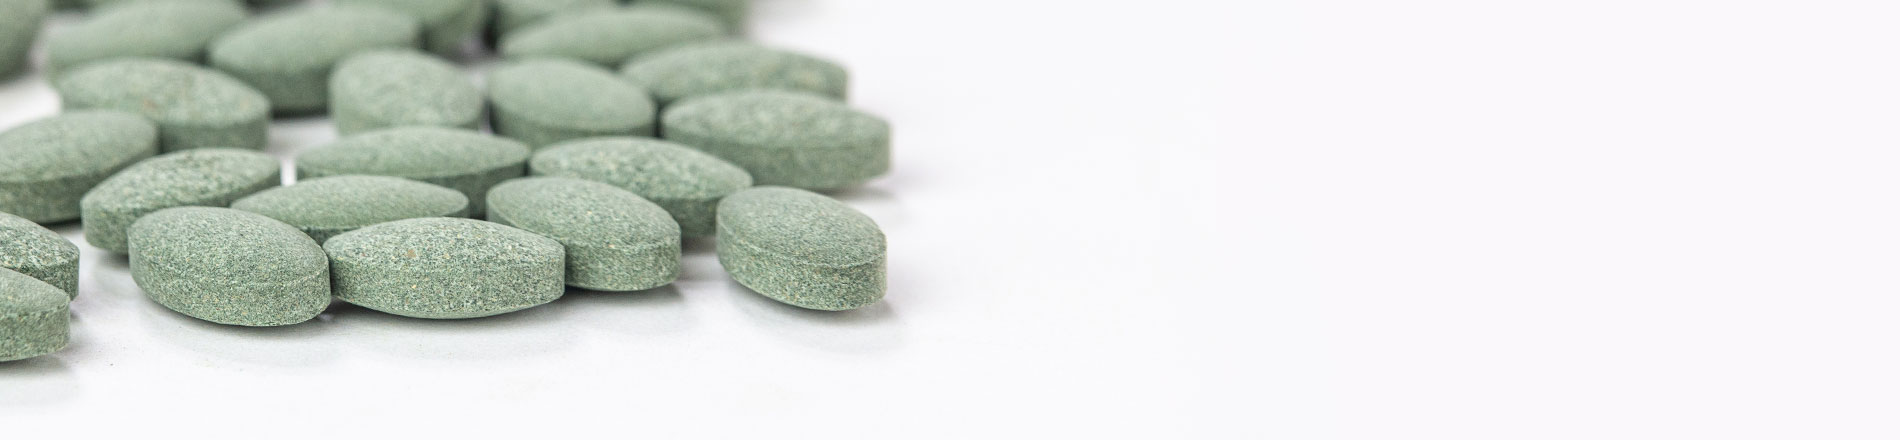 Everyday Greens tablets